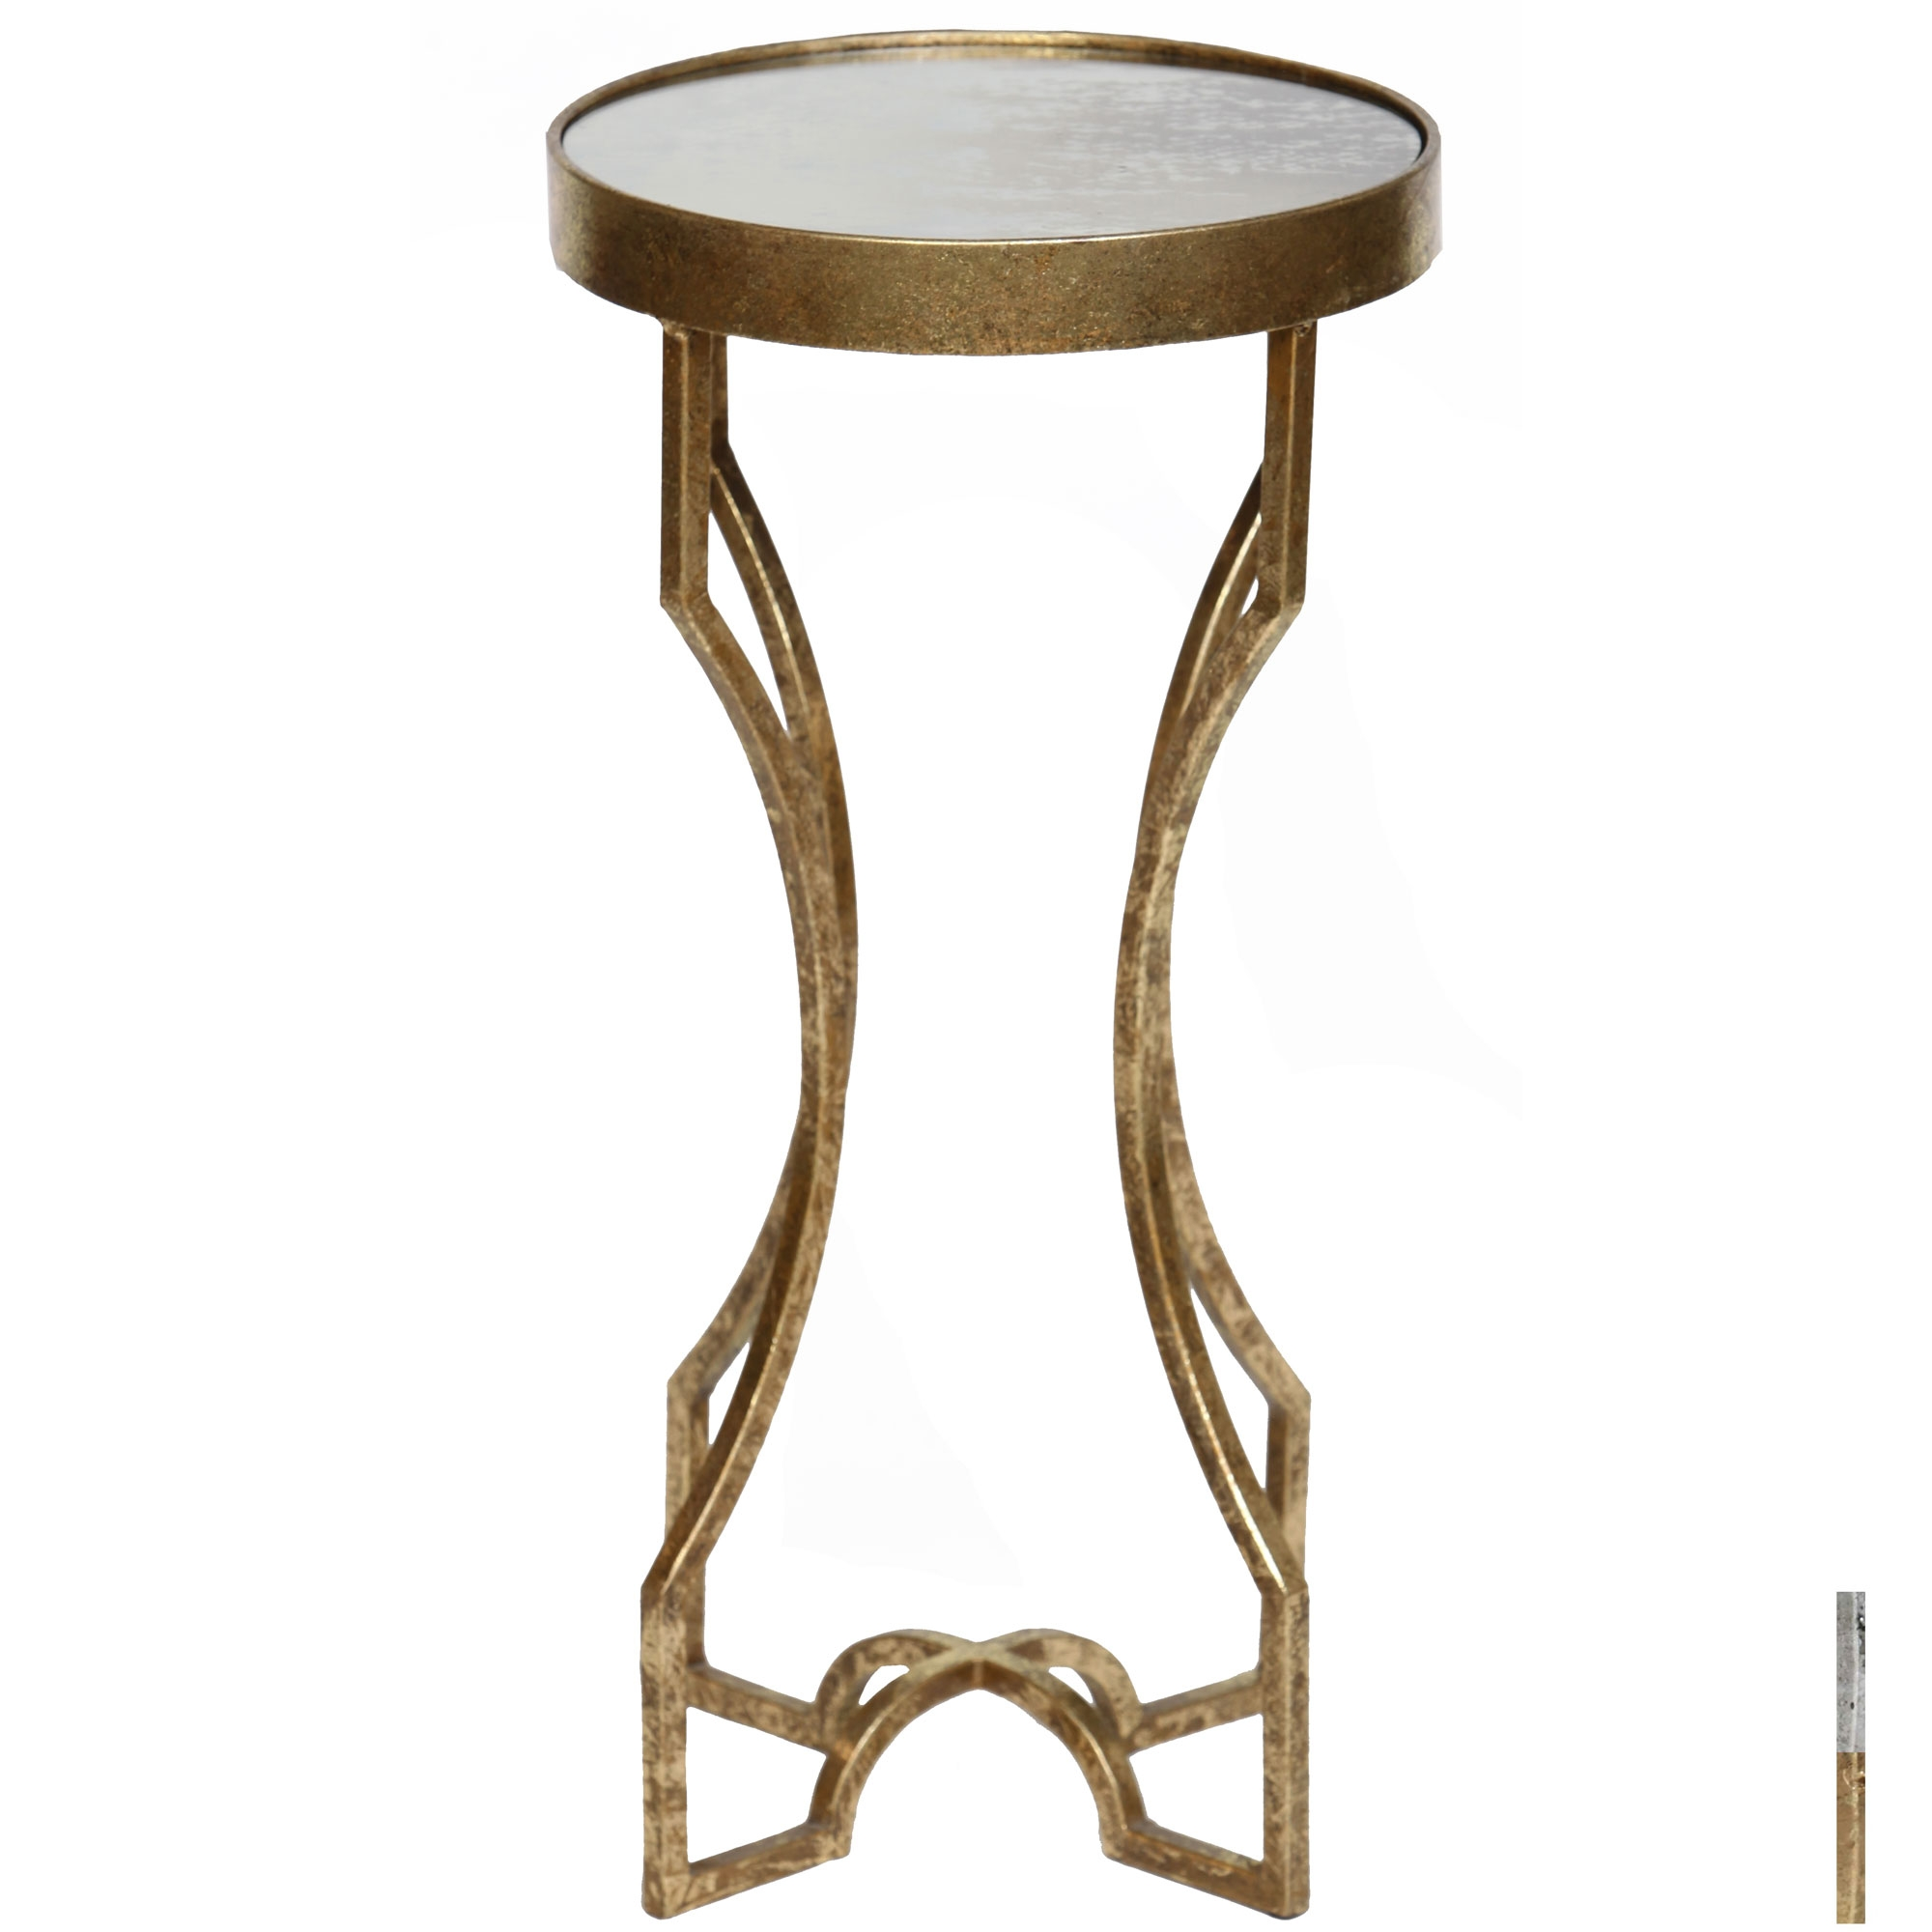 langford accent table timeless wrought iron twi silver leaf larger hayden furniture blue quilted runner carpet and tile separator brown wicker patio side gold metal console